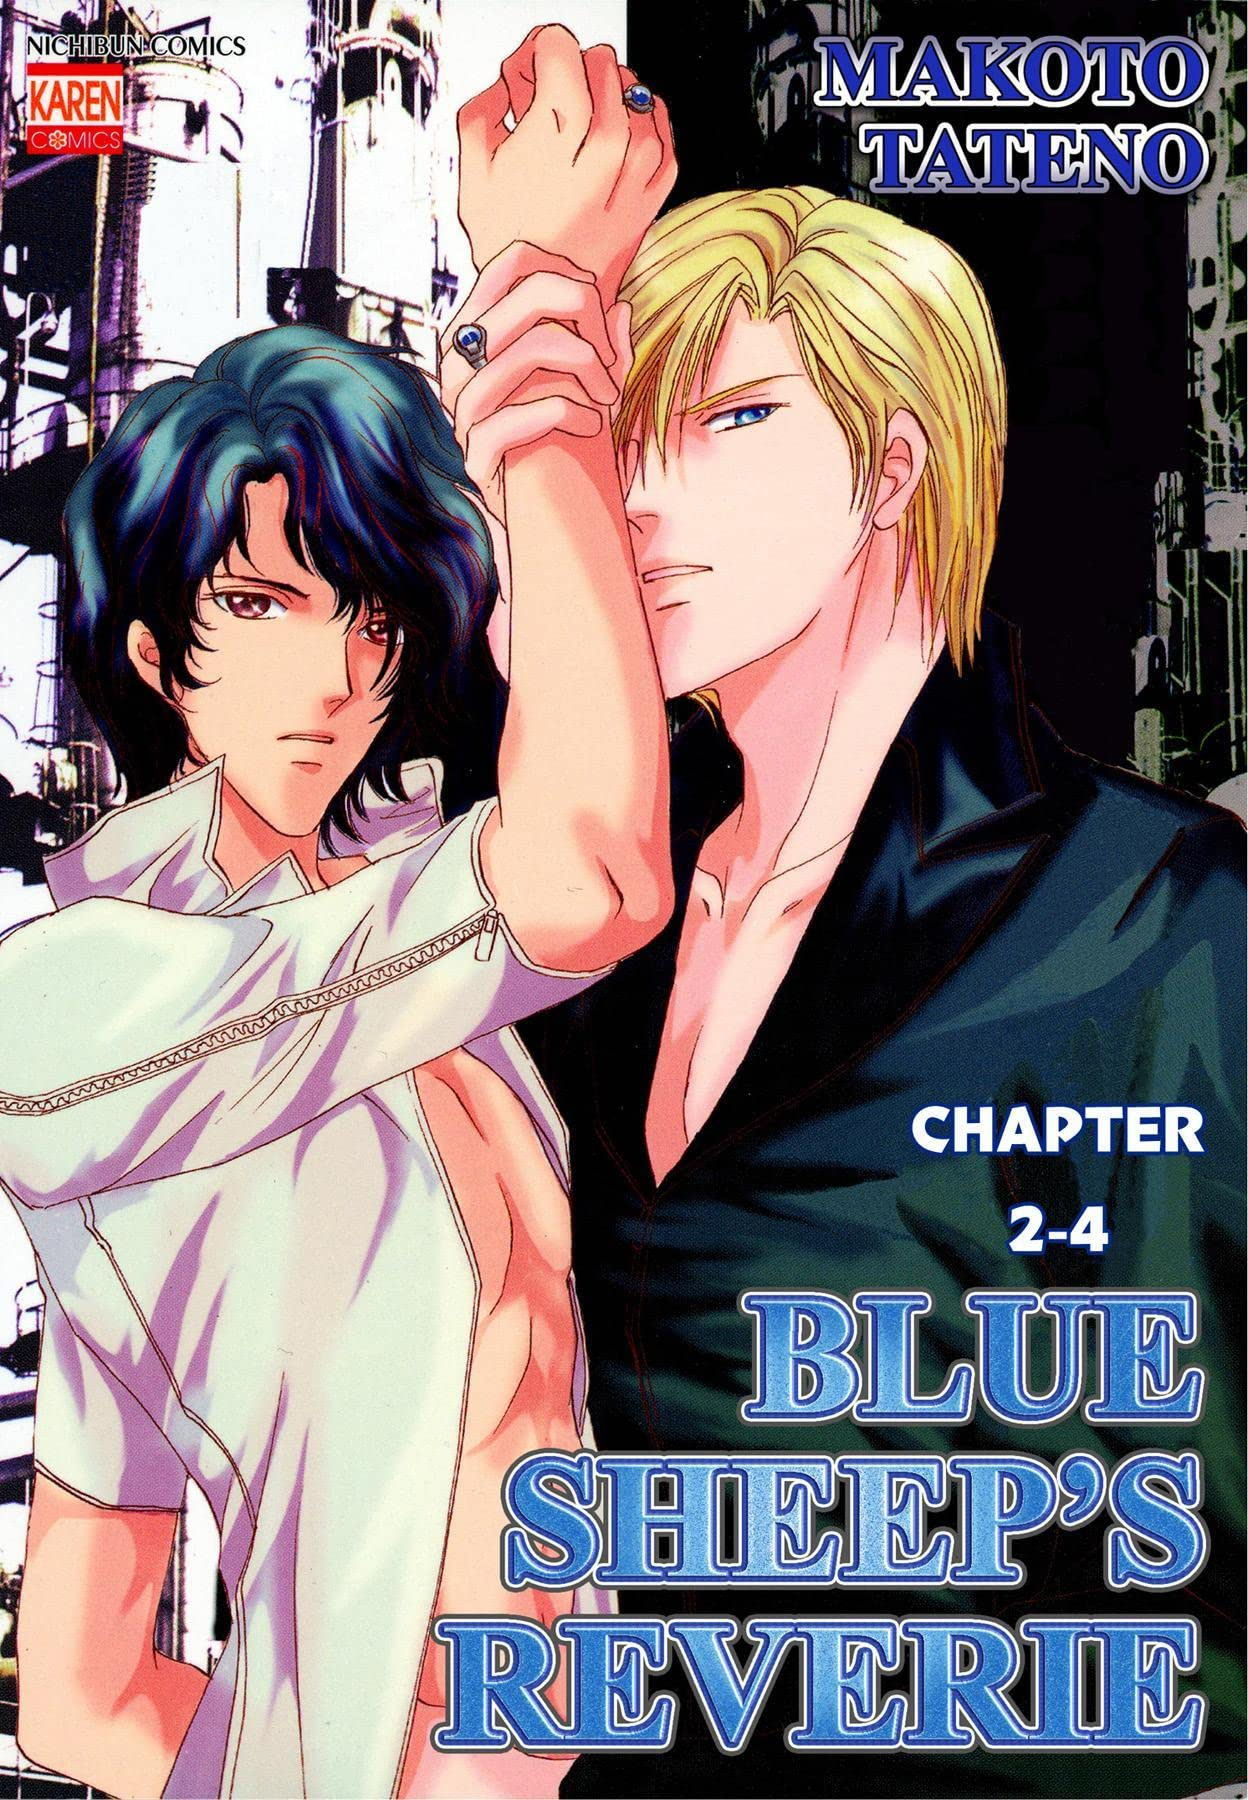 BLUE SHEEP'S REVERIE (Yaoi Manga) #7